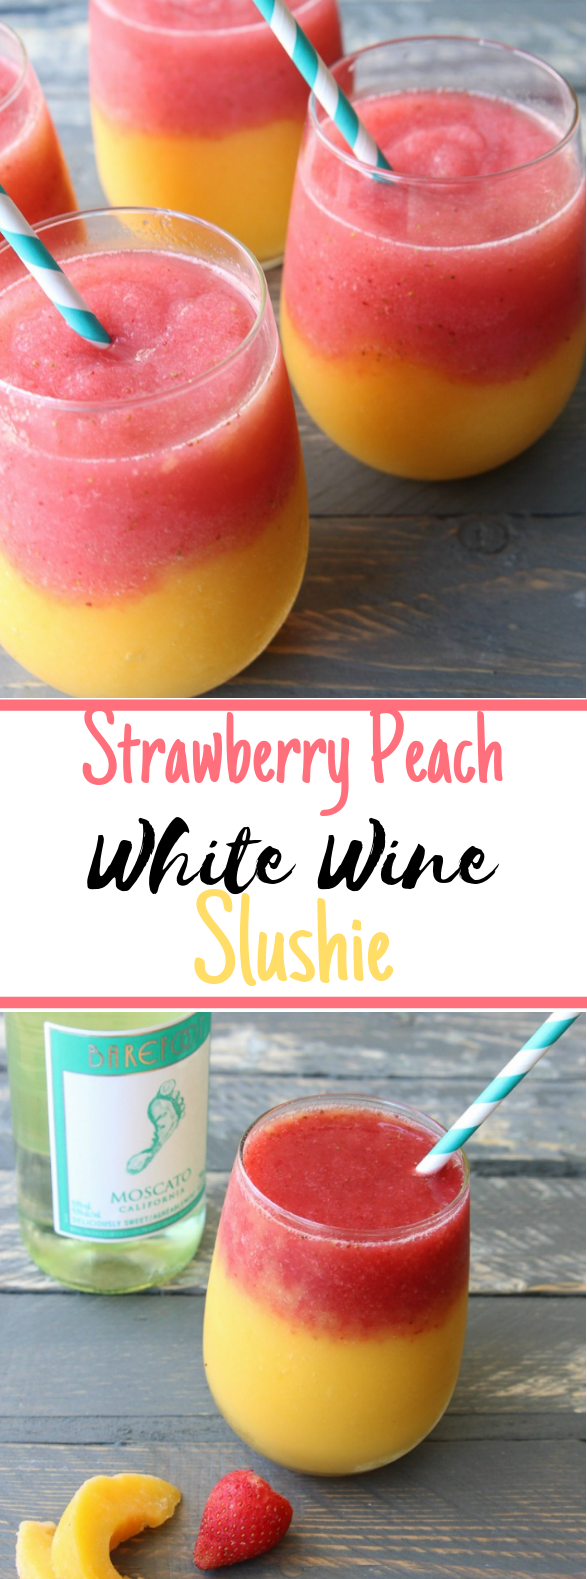 Strawberry Peach White Wine Slushie #drink #summer